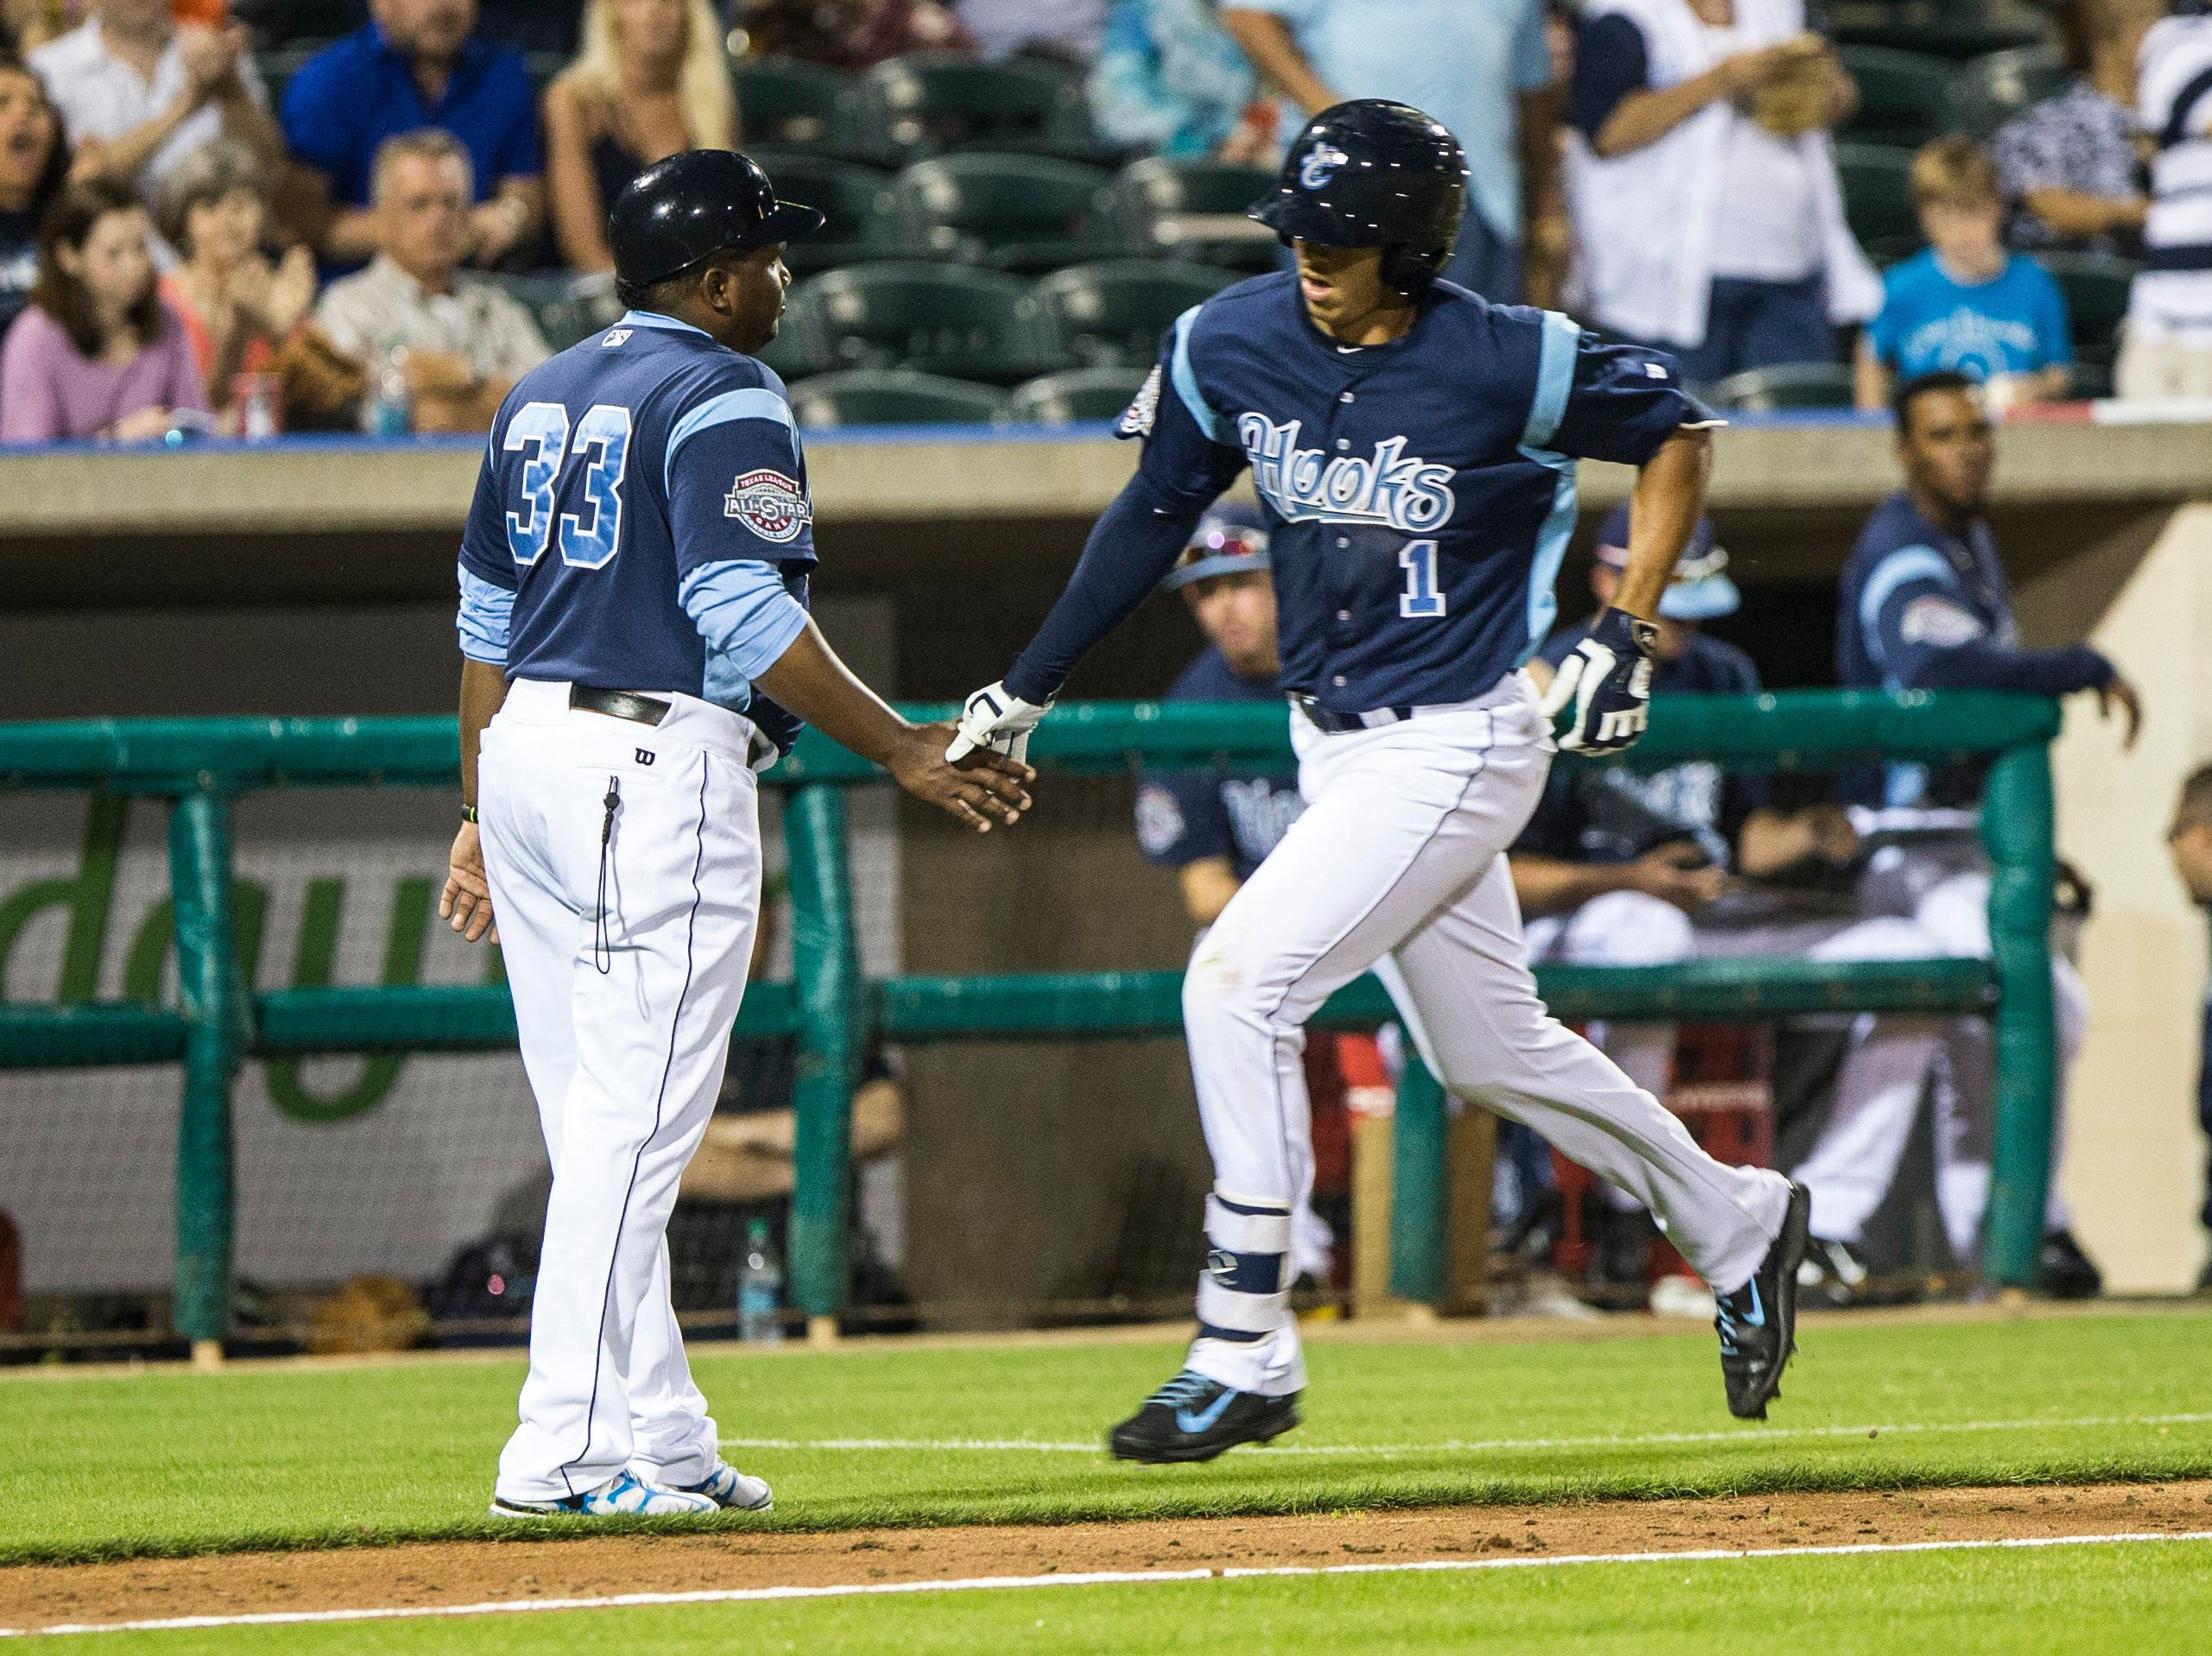 Andrew Mitchell/Caller-Times Corpus Christi Hooks' manger Rodney Linares shakes hands with Carlos Correas after his home run during their 2015 Texas League All Star Game the Houston Astros at Whataburger Field Thursday evening, April 2, in Corpus Christi.